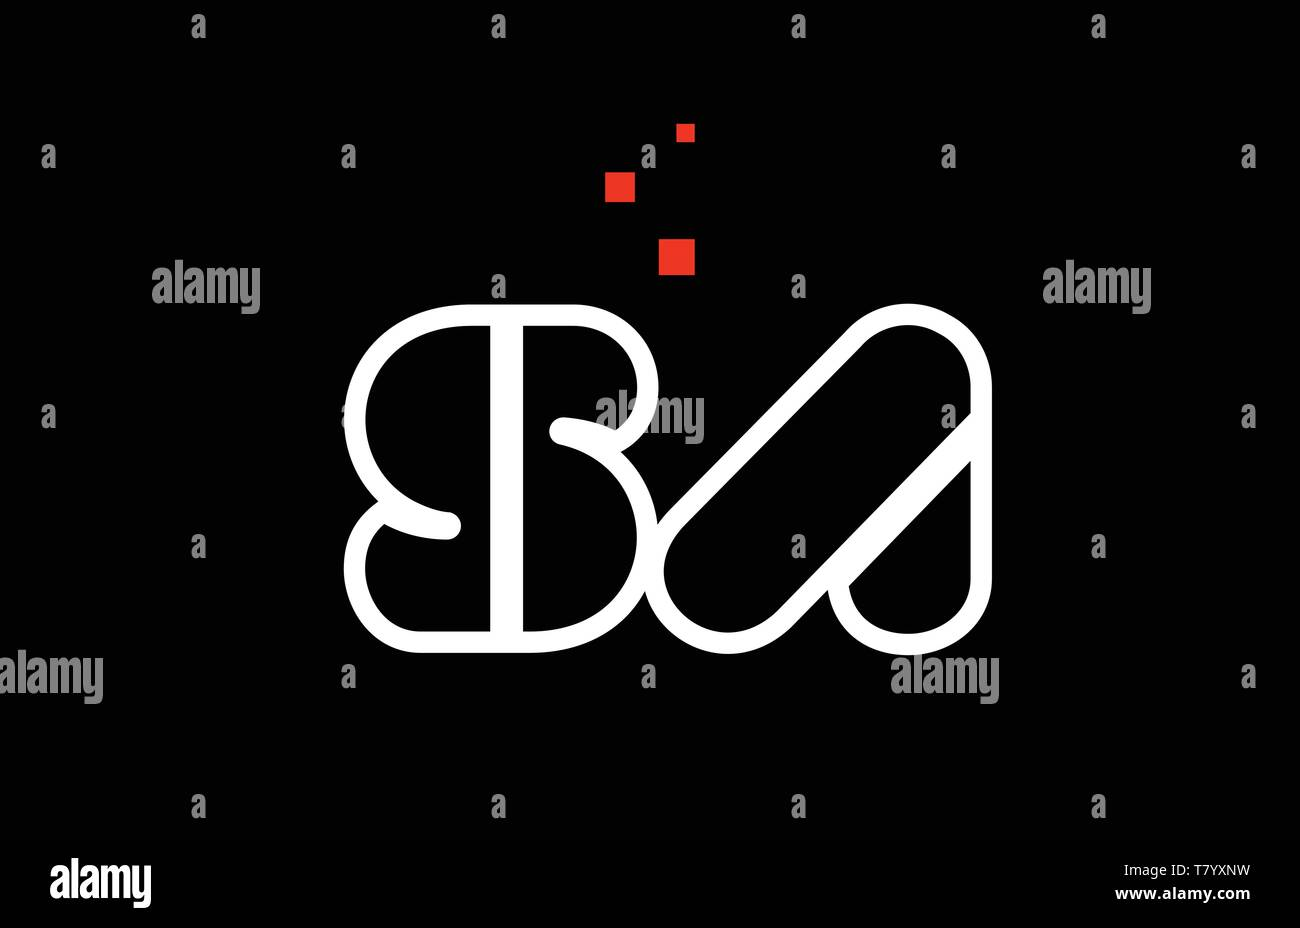 SA S A black white red dots alphabet letter combination suitable as a logo icon design for a company or business - Stock Vector